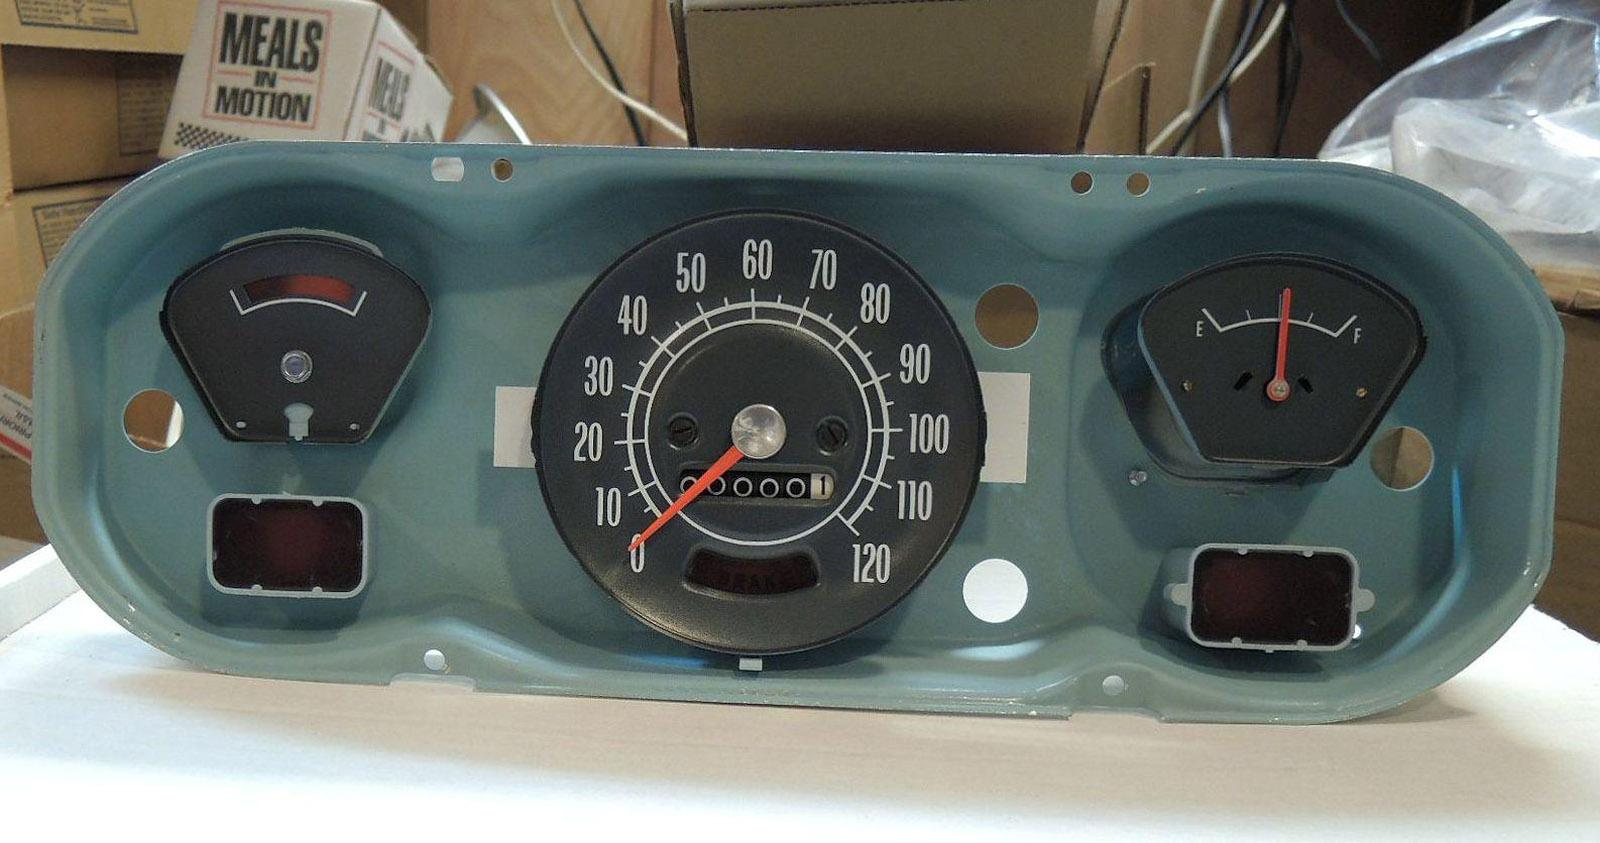 A vintage automobile dashboard with a dry transfer decal used to restore the speedometer and fuel gauge on a classic car. Classic car restoration decals.